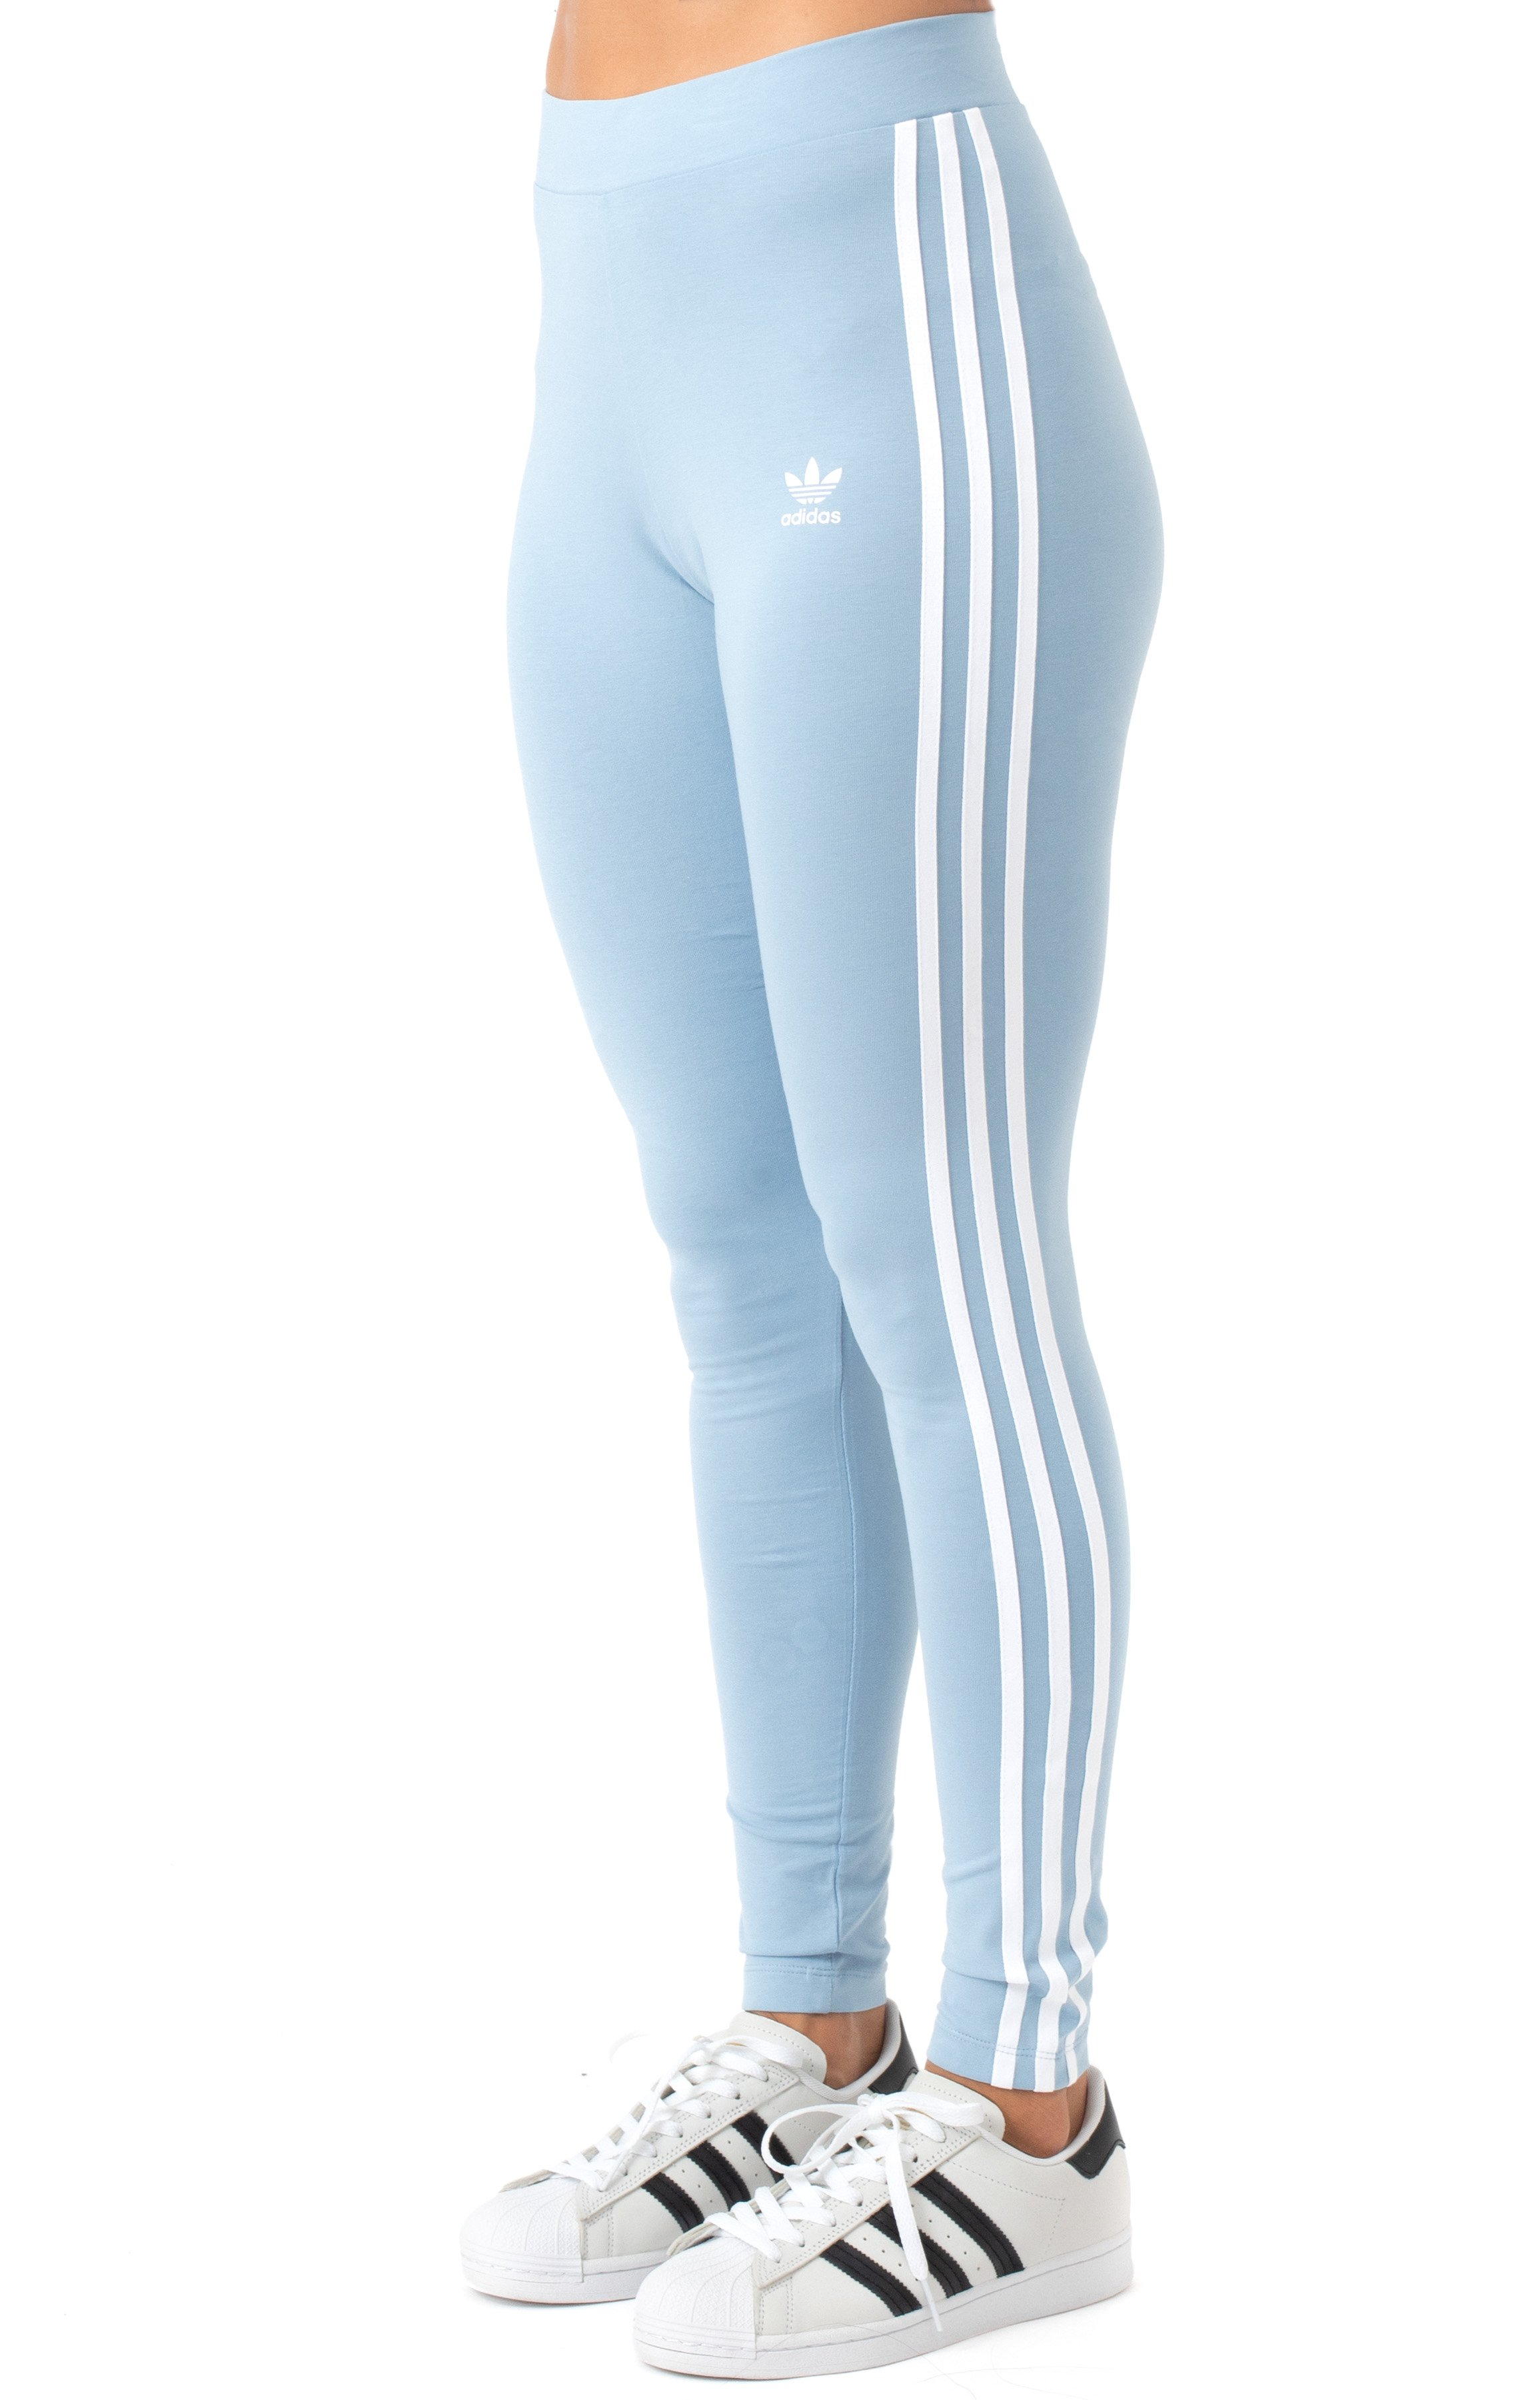 3 Stripes Tights - Ambient Sky